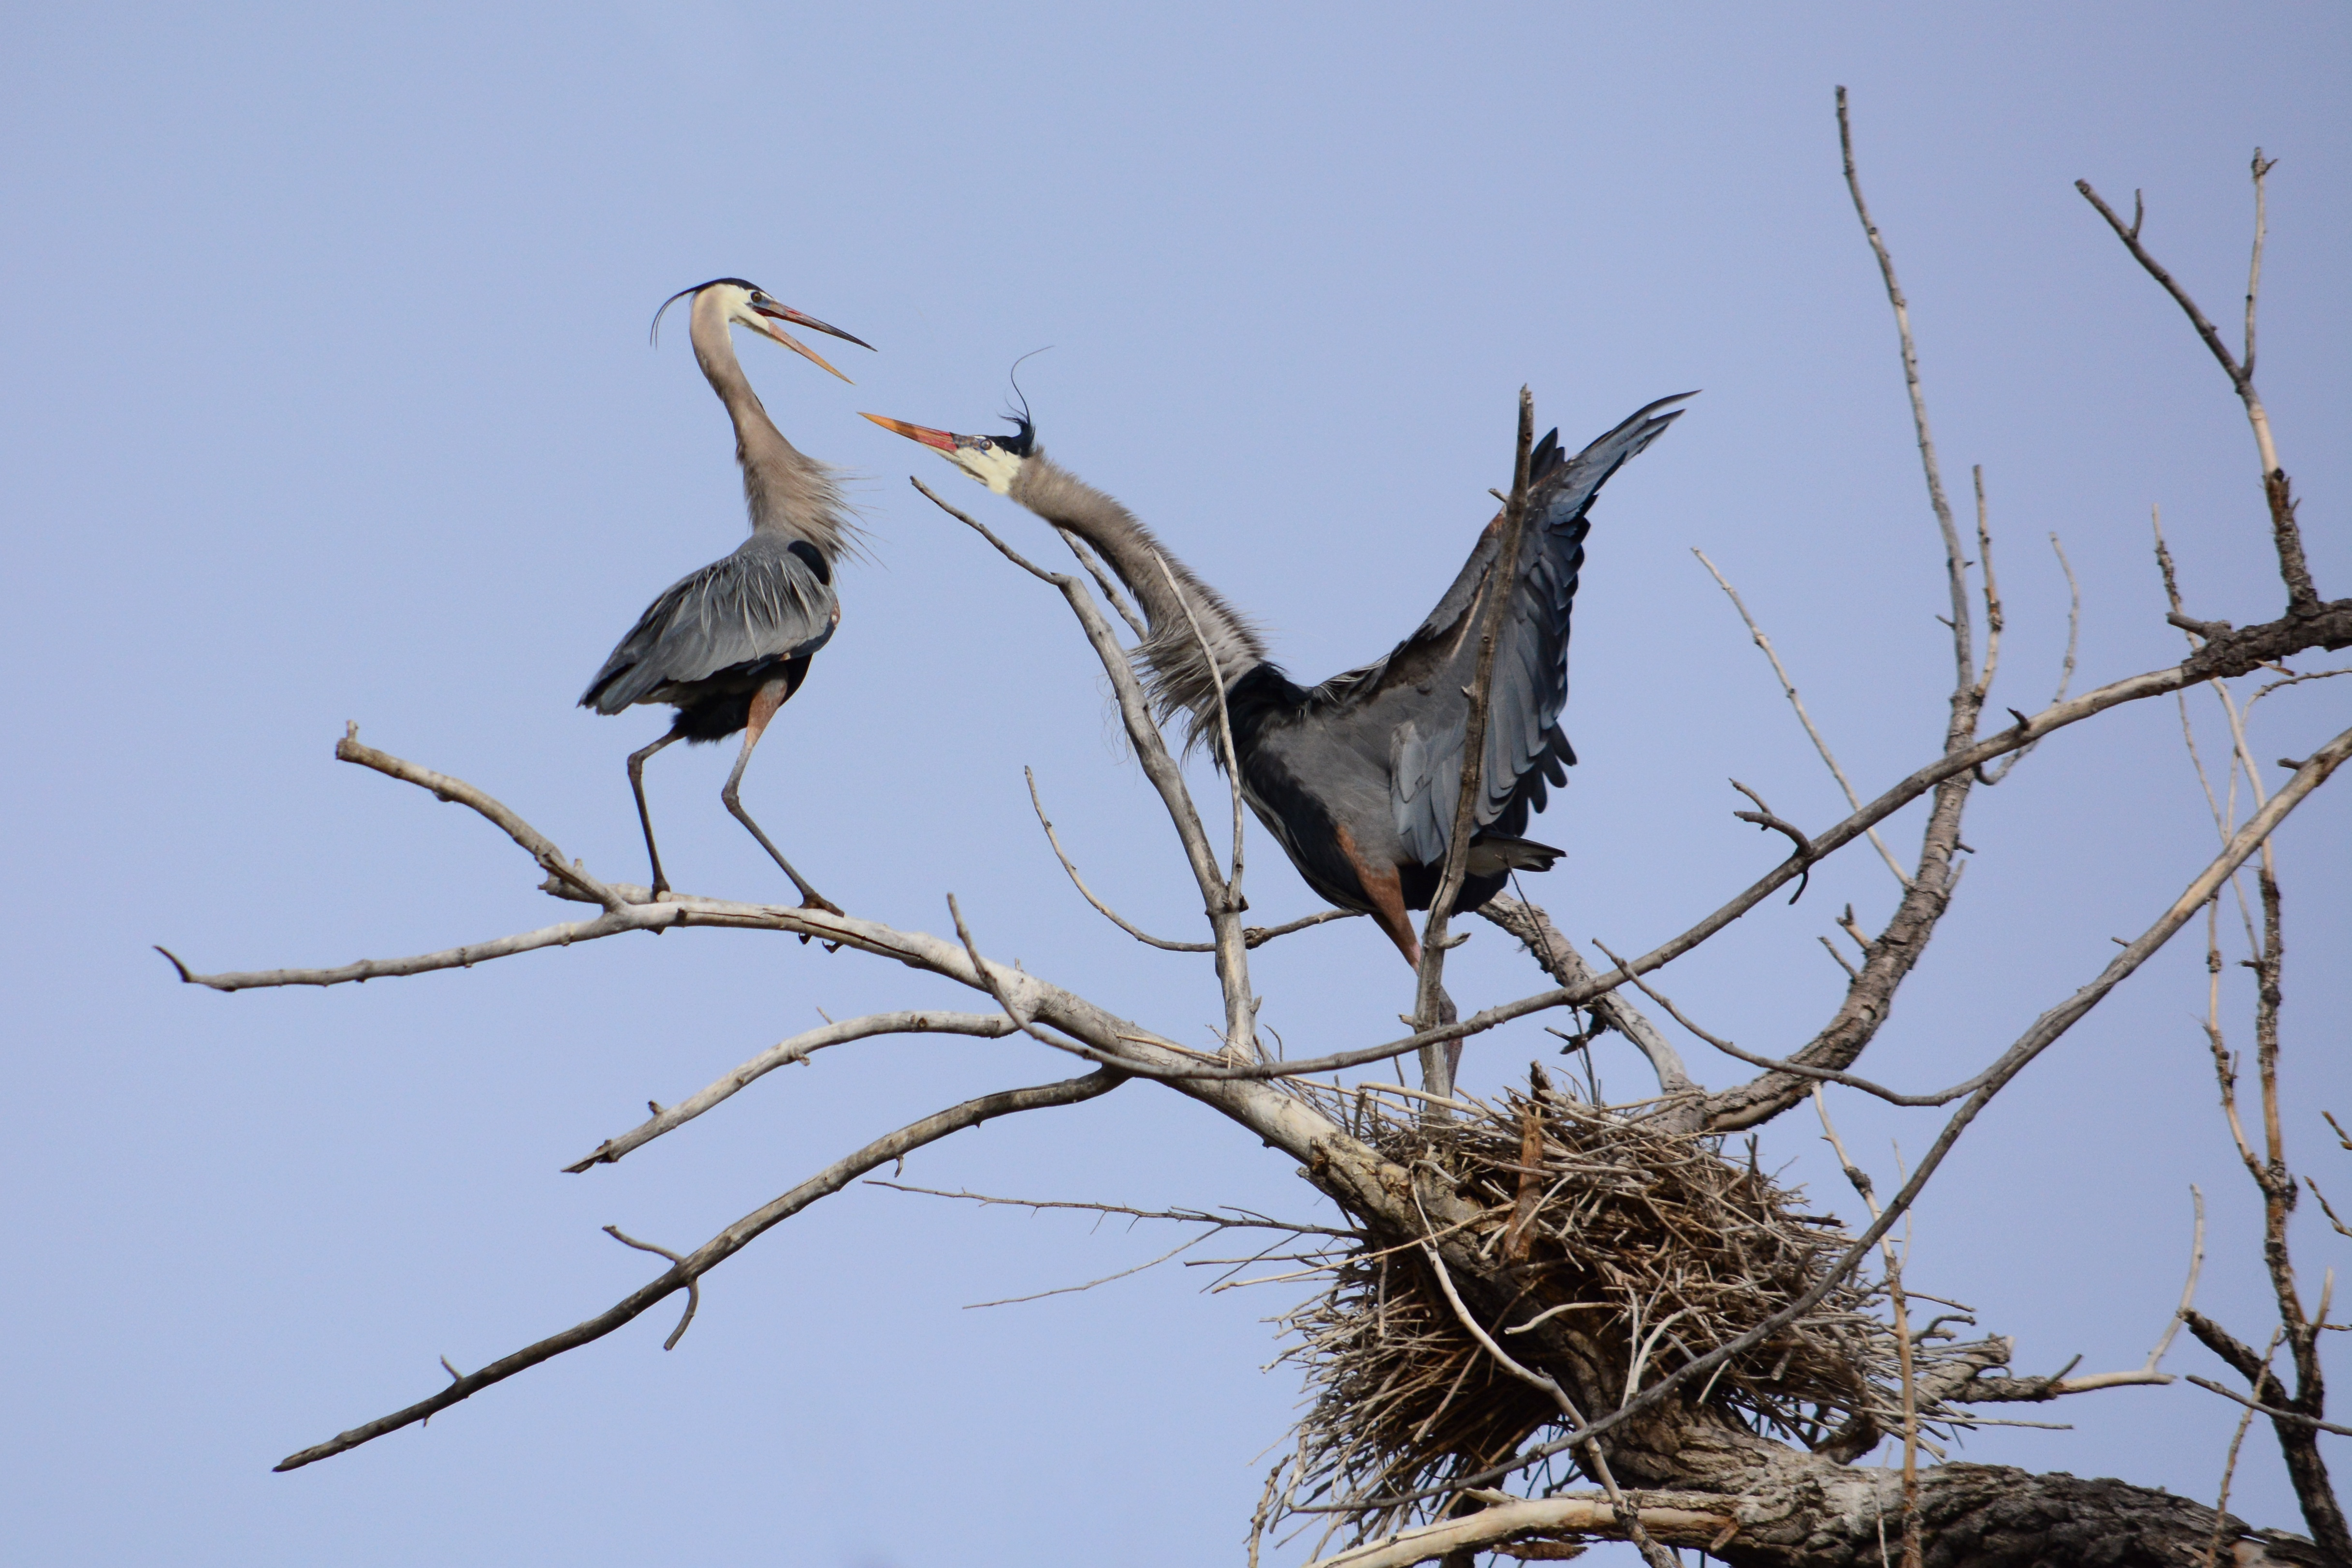 Observing Great Blue Herons at the Rookery